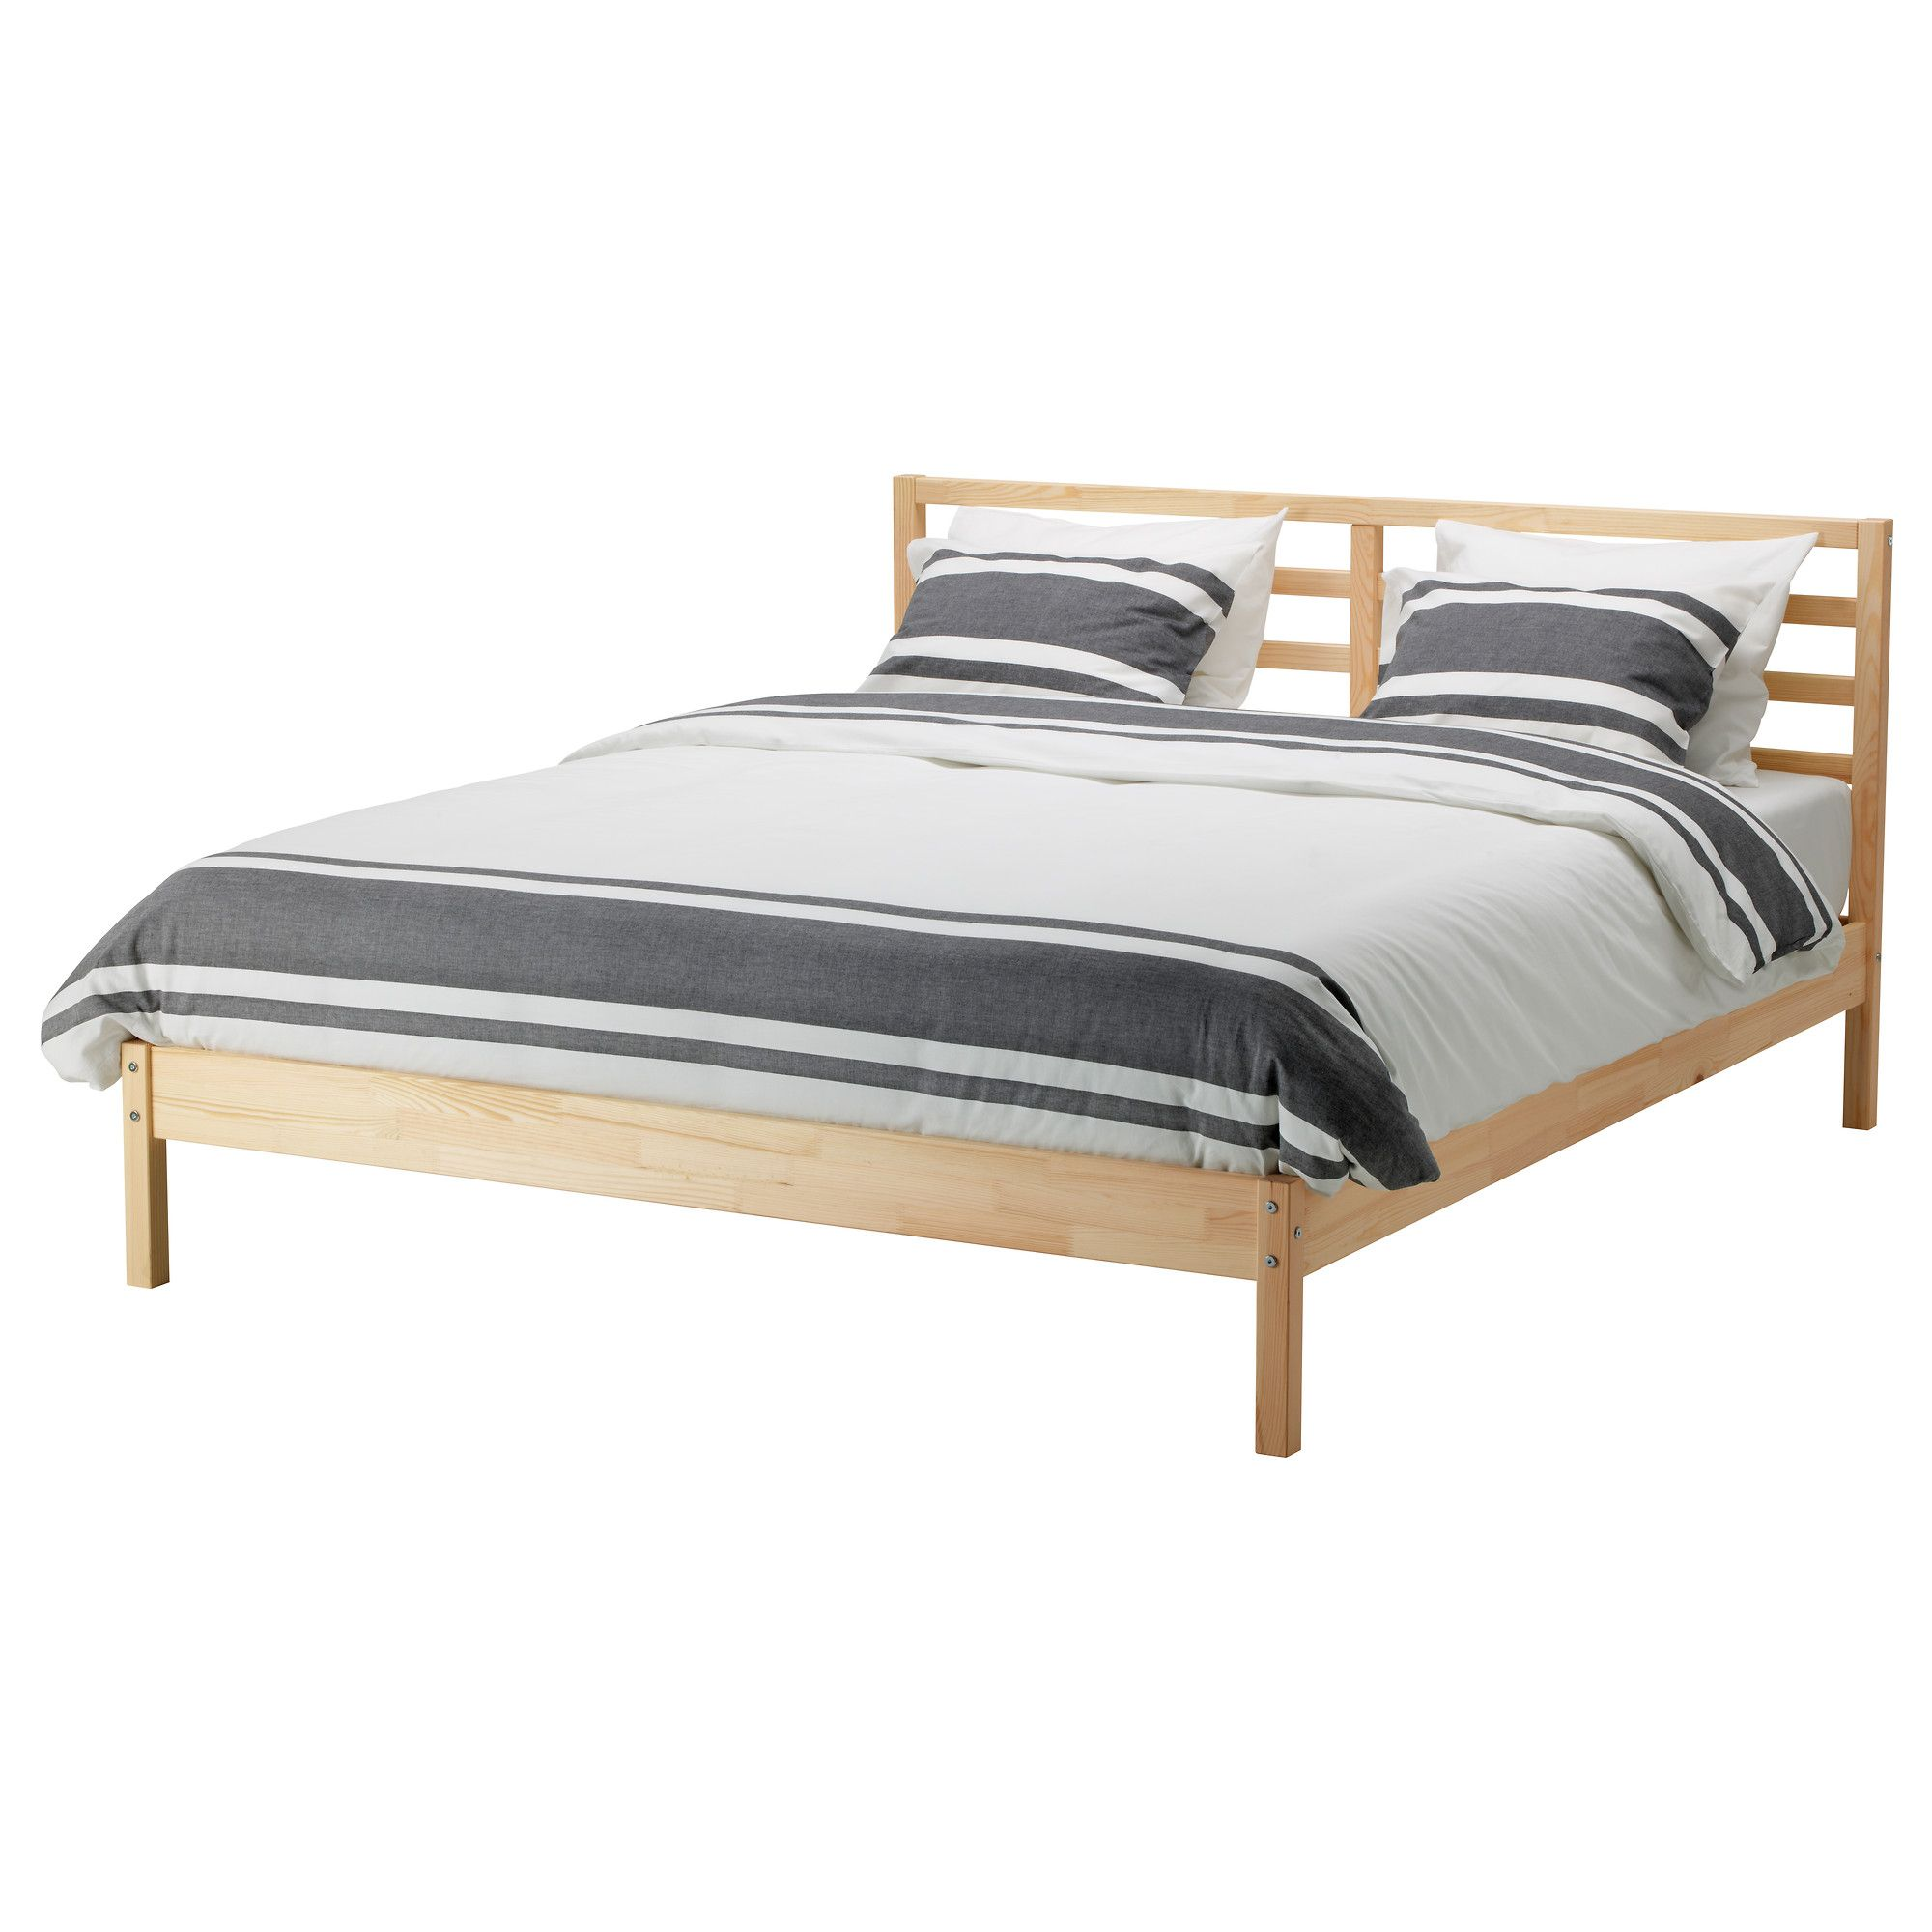 tarva bed frame, pine | bed frames, bedrooms and apartments